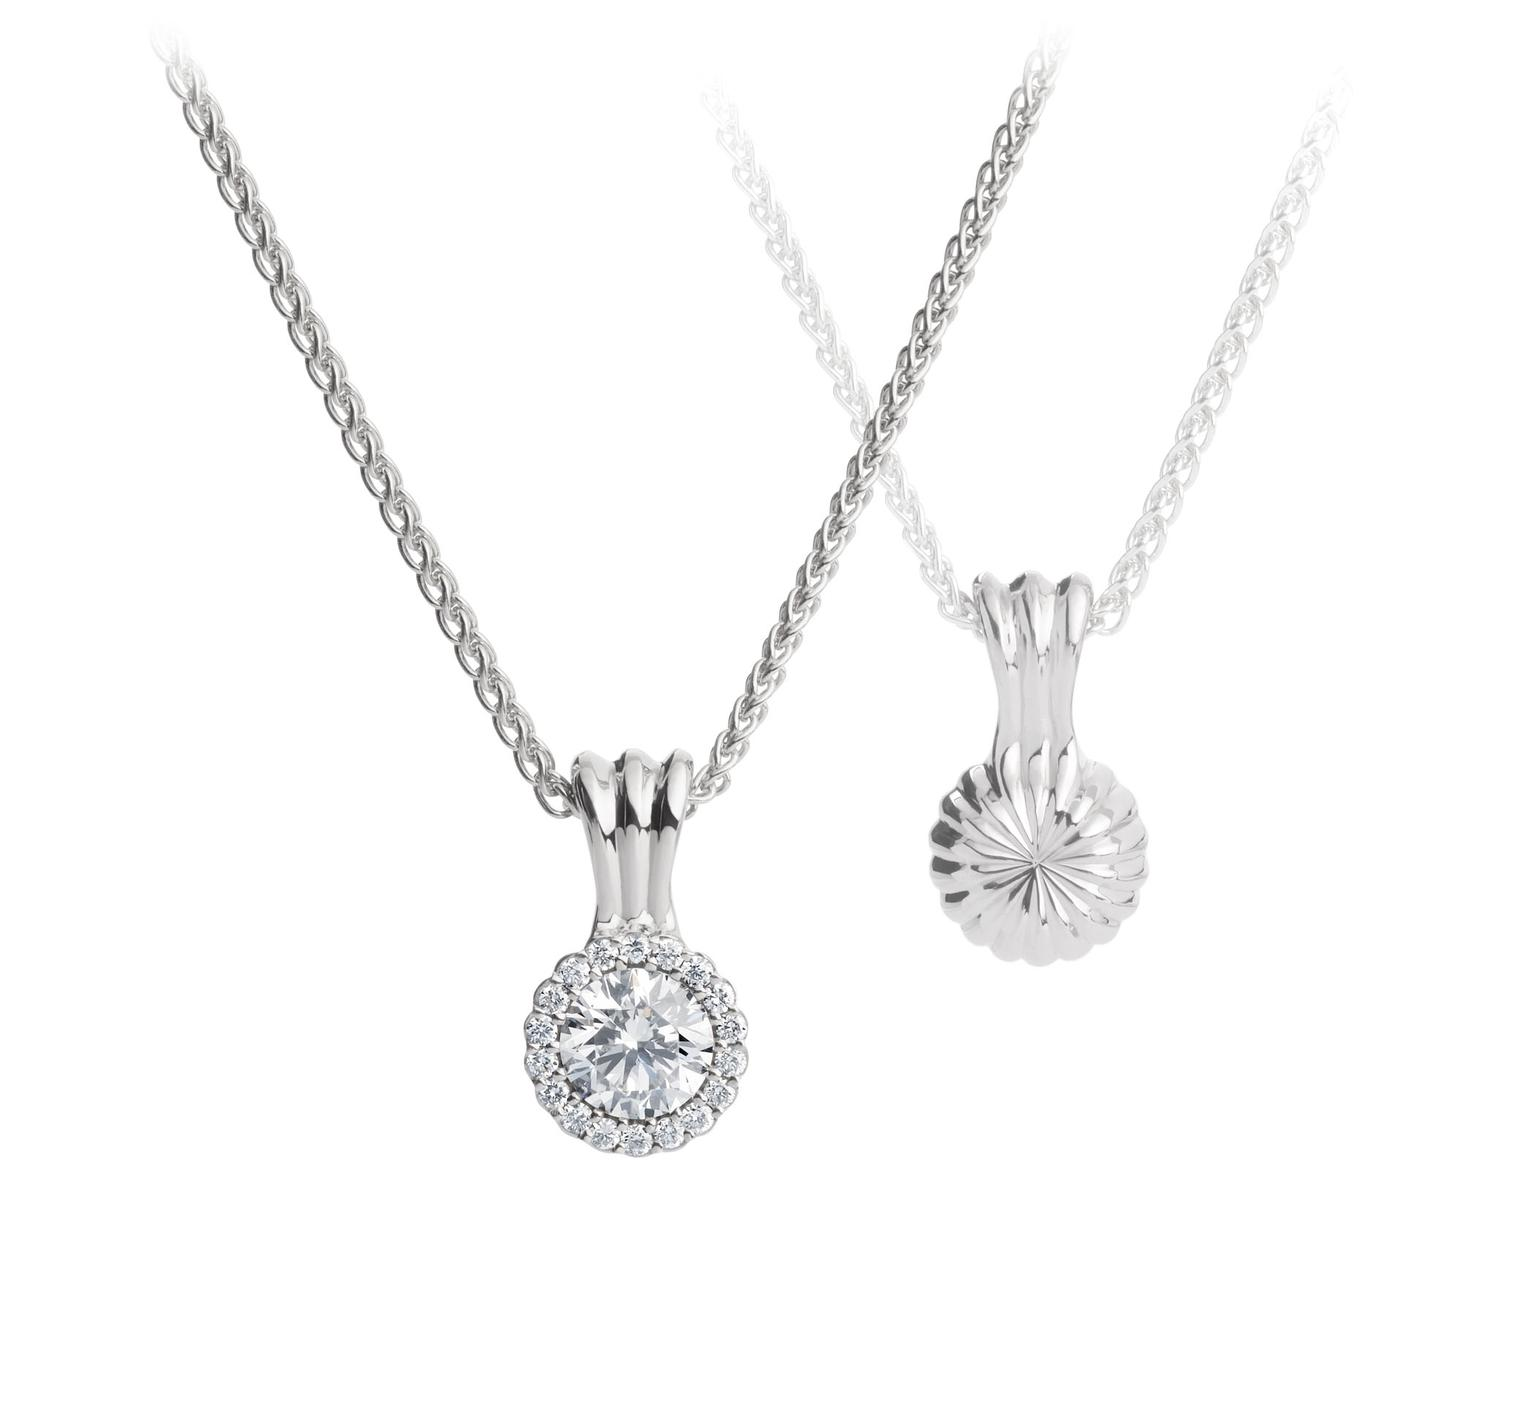 Wedding Ring Necklace 89 Lovely AG Cannele Necklace zoom